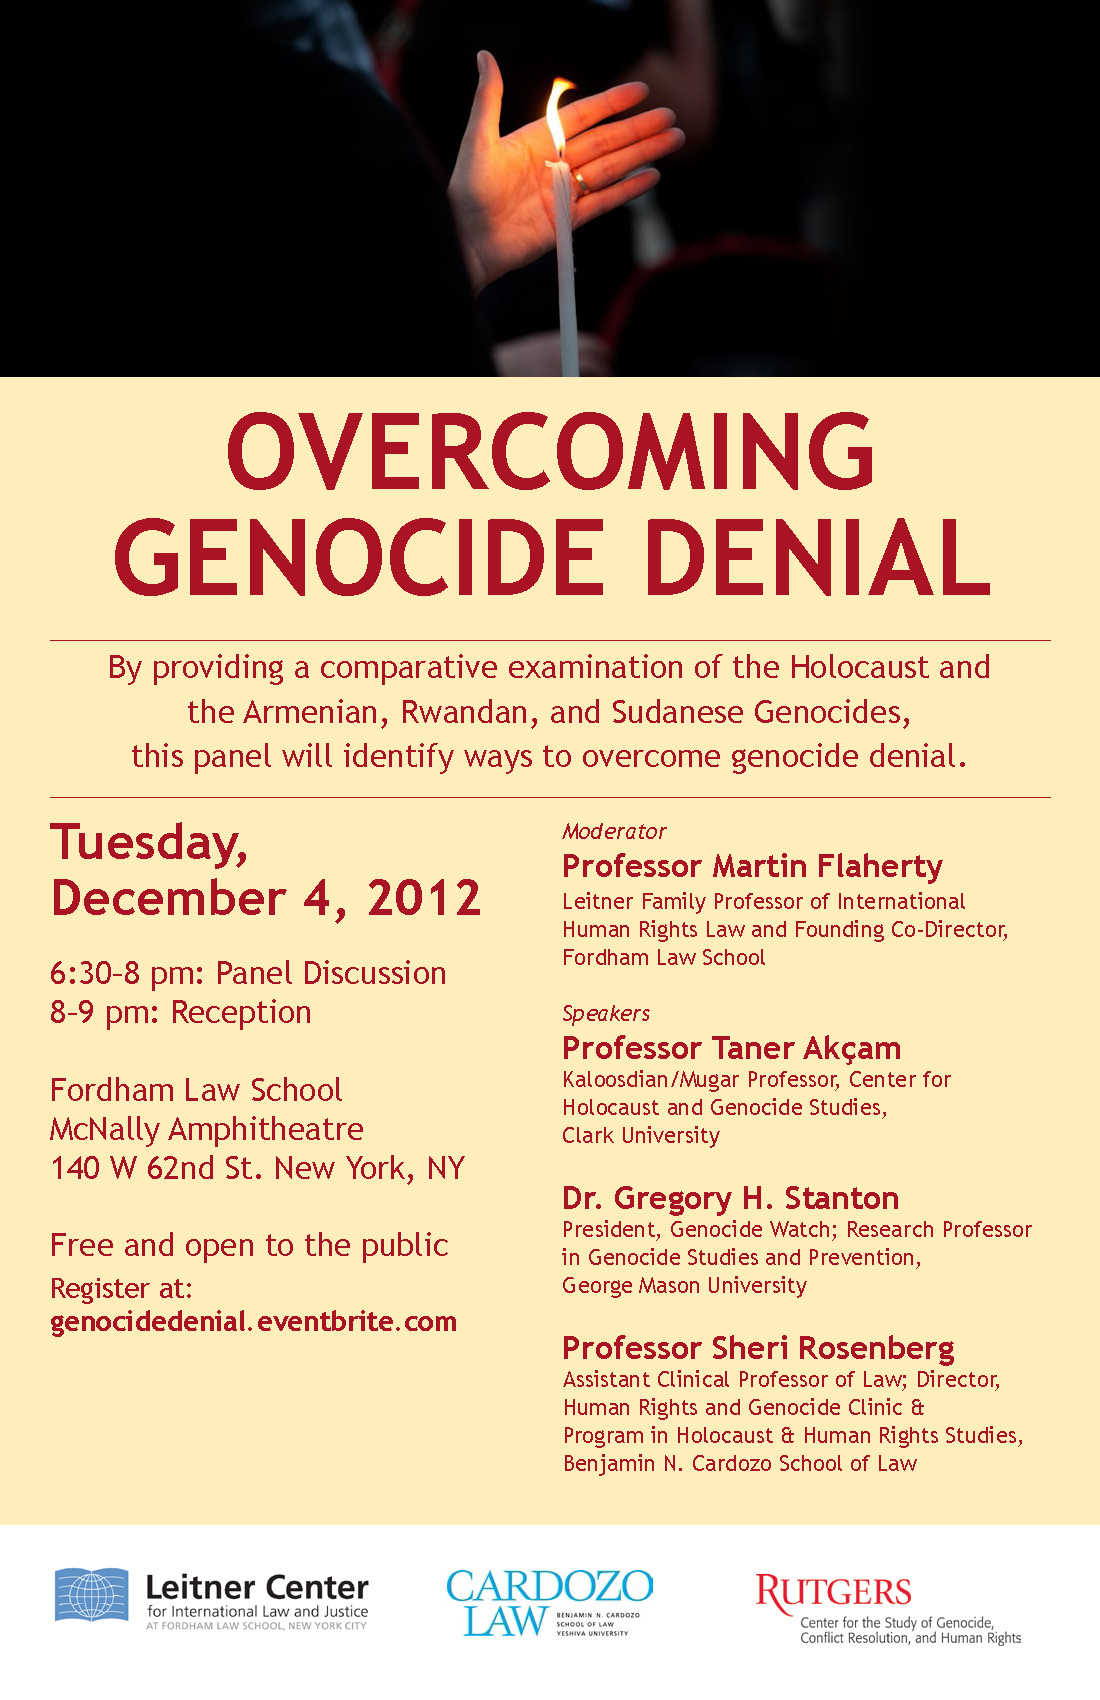 Event poster_Overcoming Genocide Denial_Dec 4 at 6:30 pm, Fordham Law School